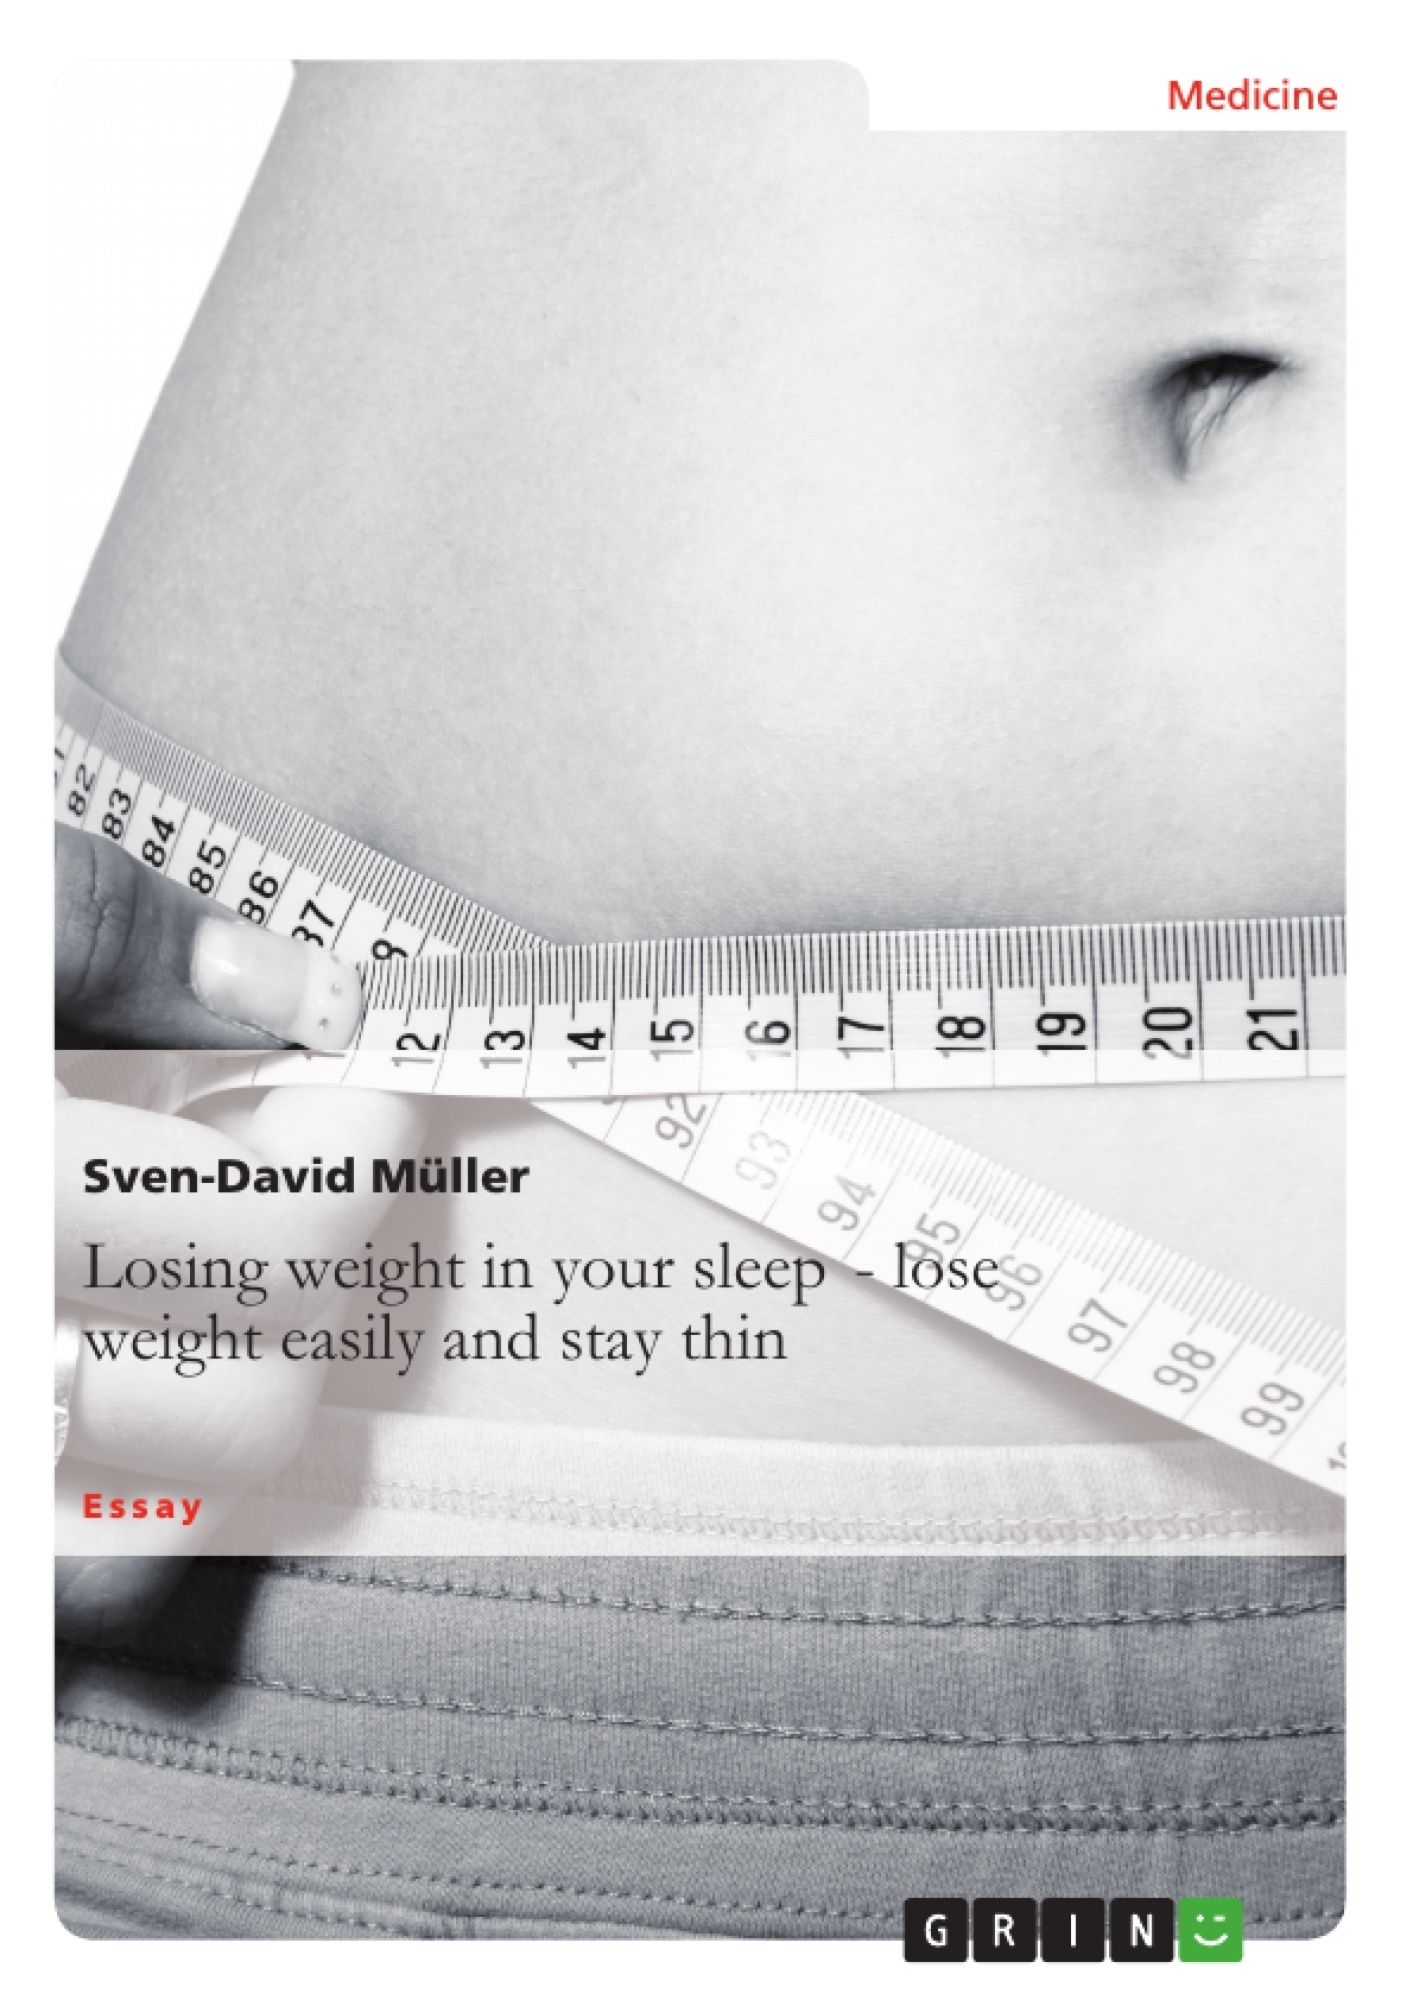 Title: Losing weight in your sleep – lose weight easily and stay thin